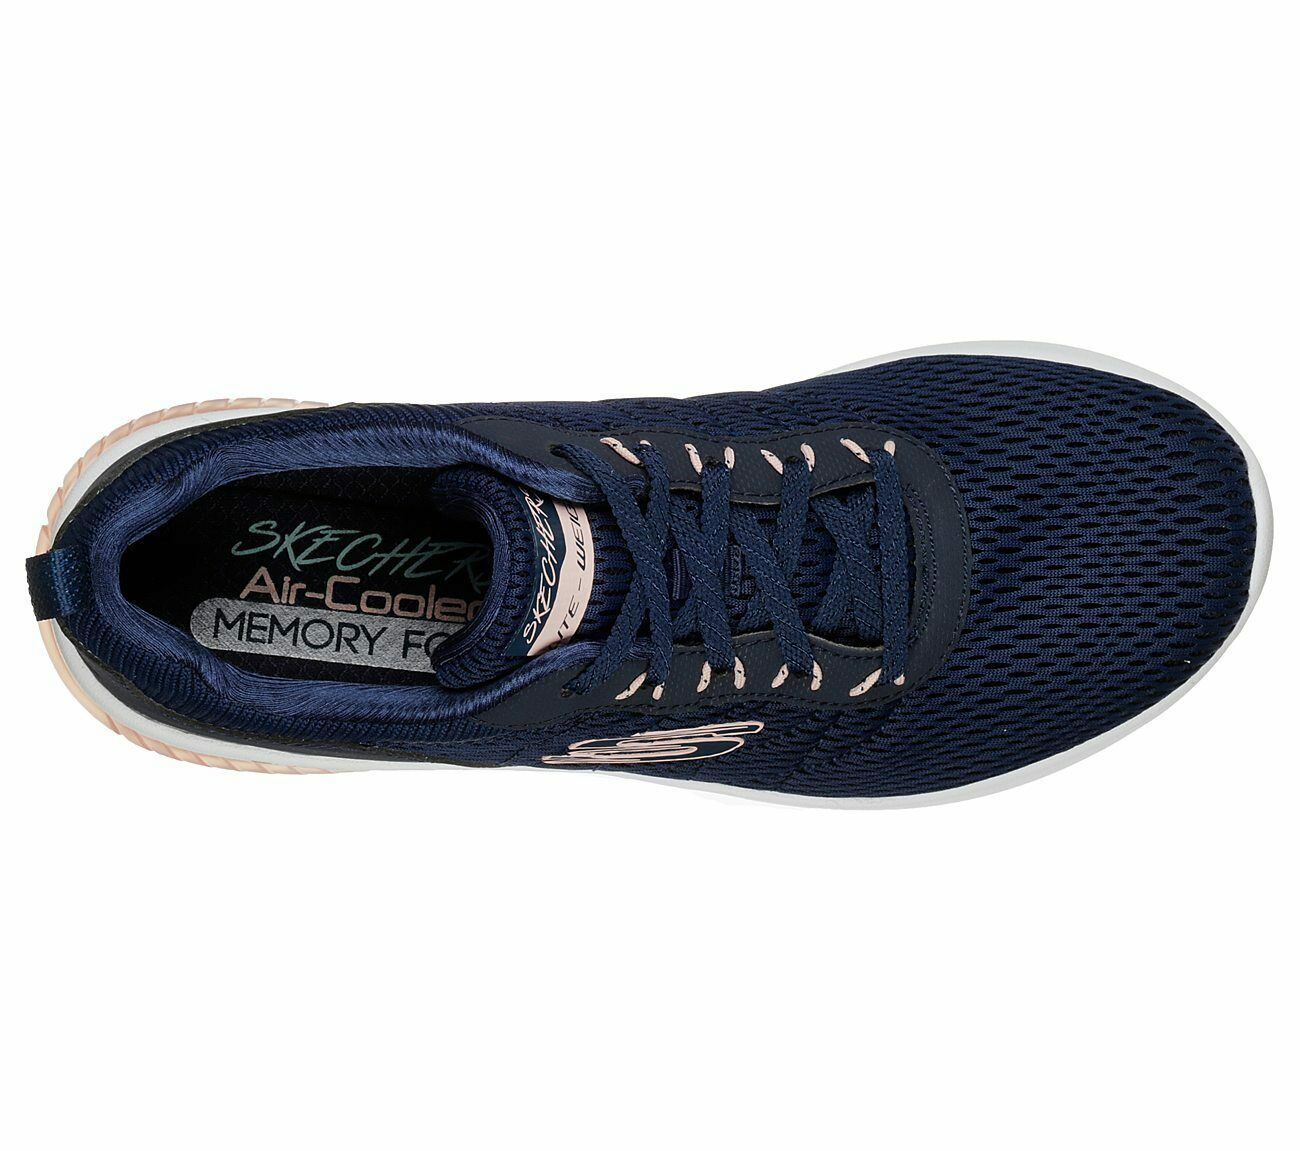 Skechers Navy Pink shoes Memory Foam Women's Sporty Air Ultra Flex Comfort 13290 image 5